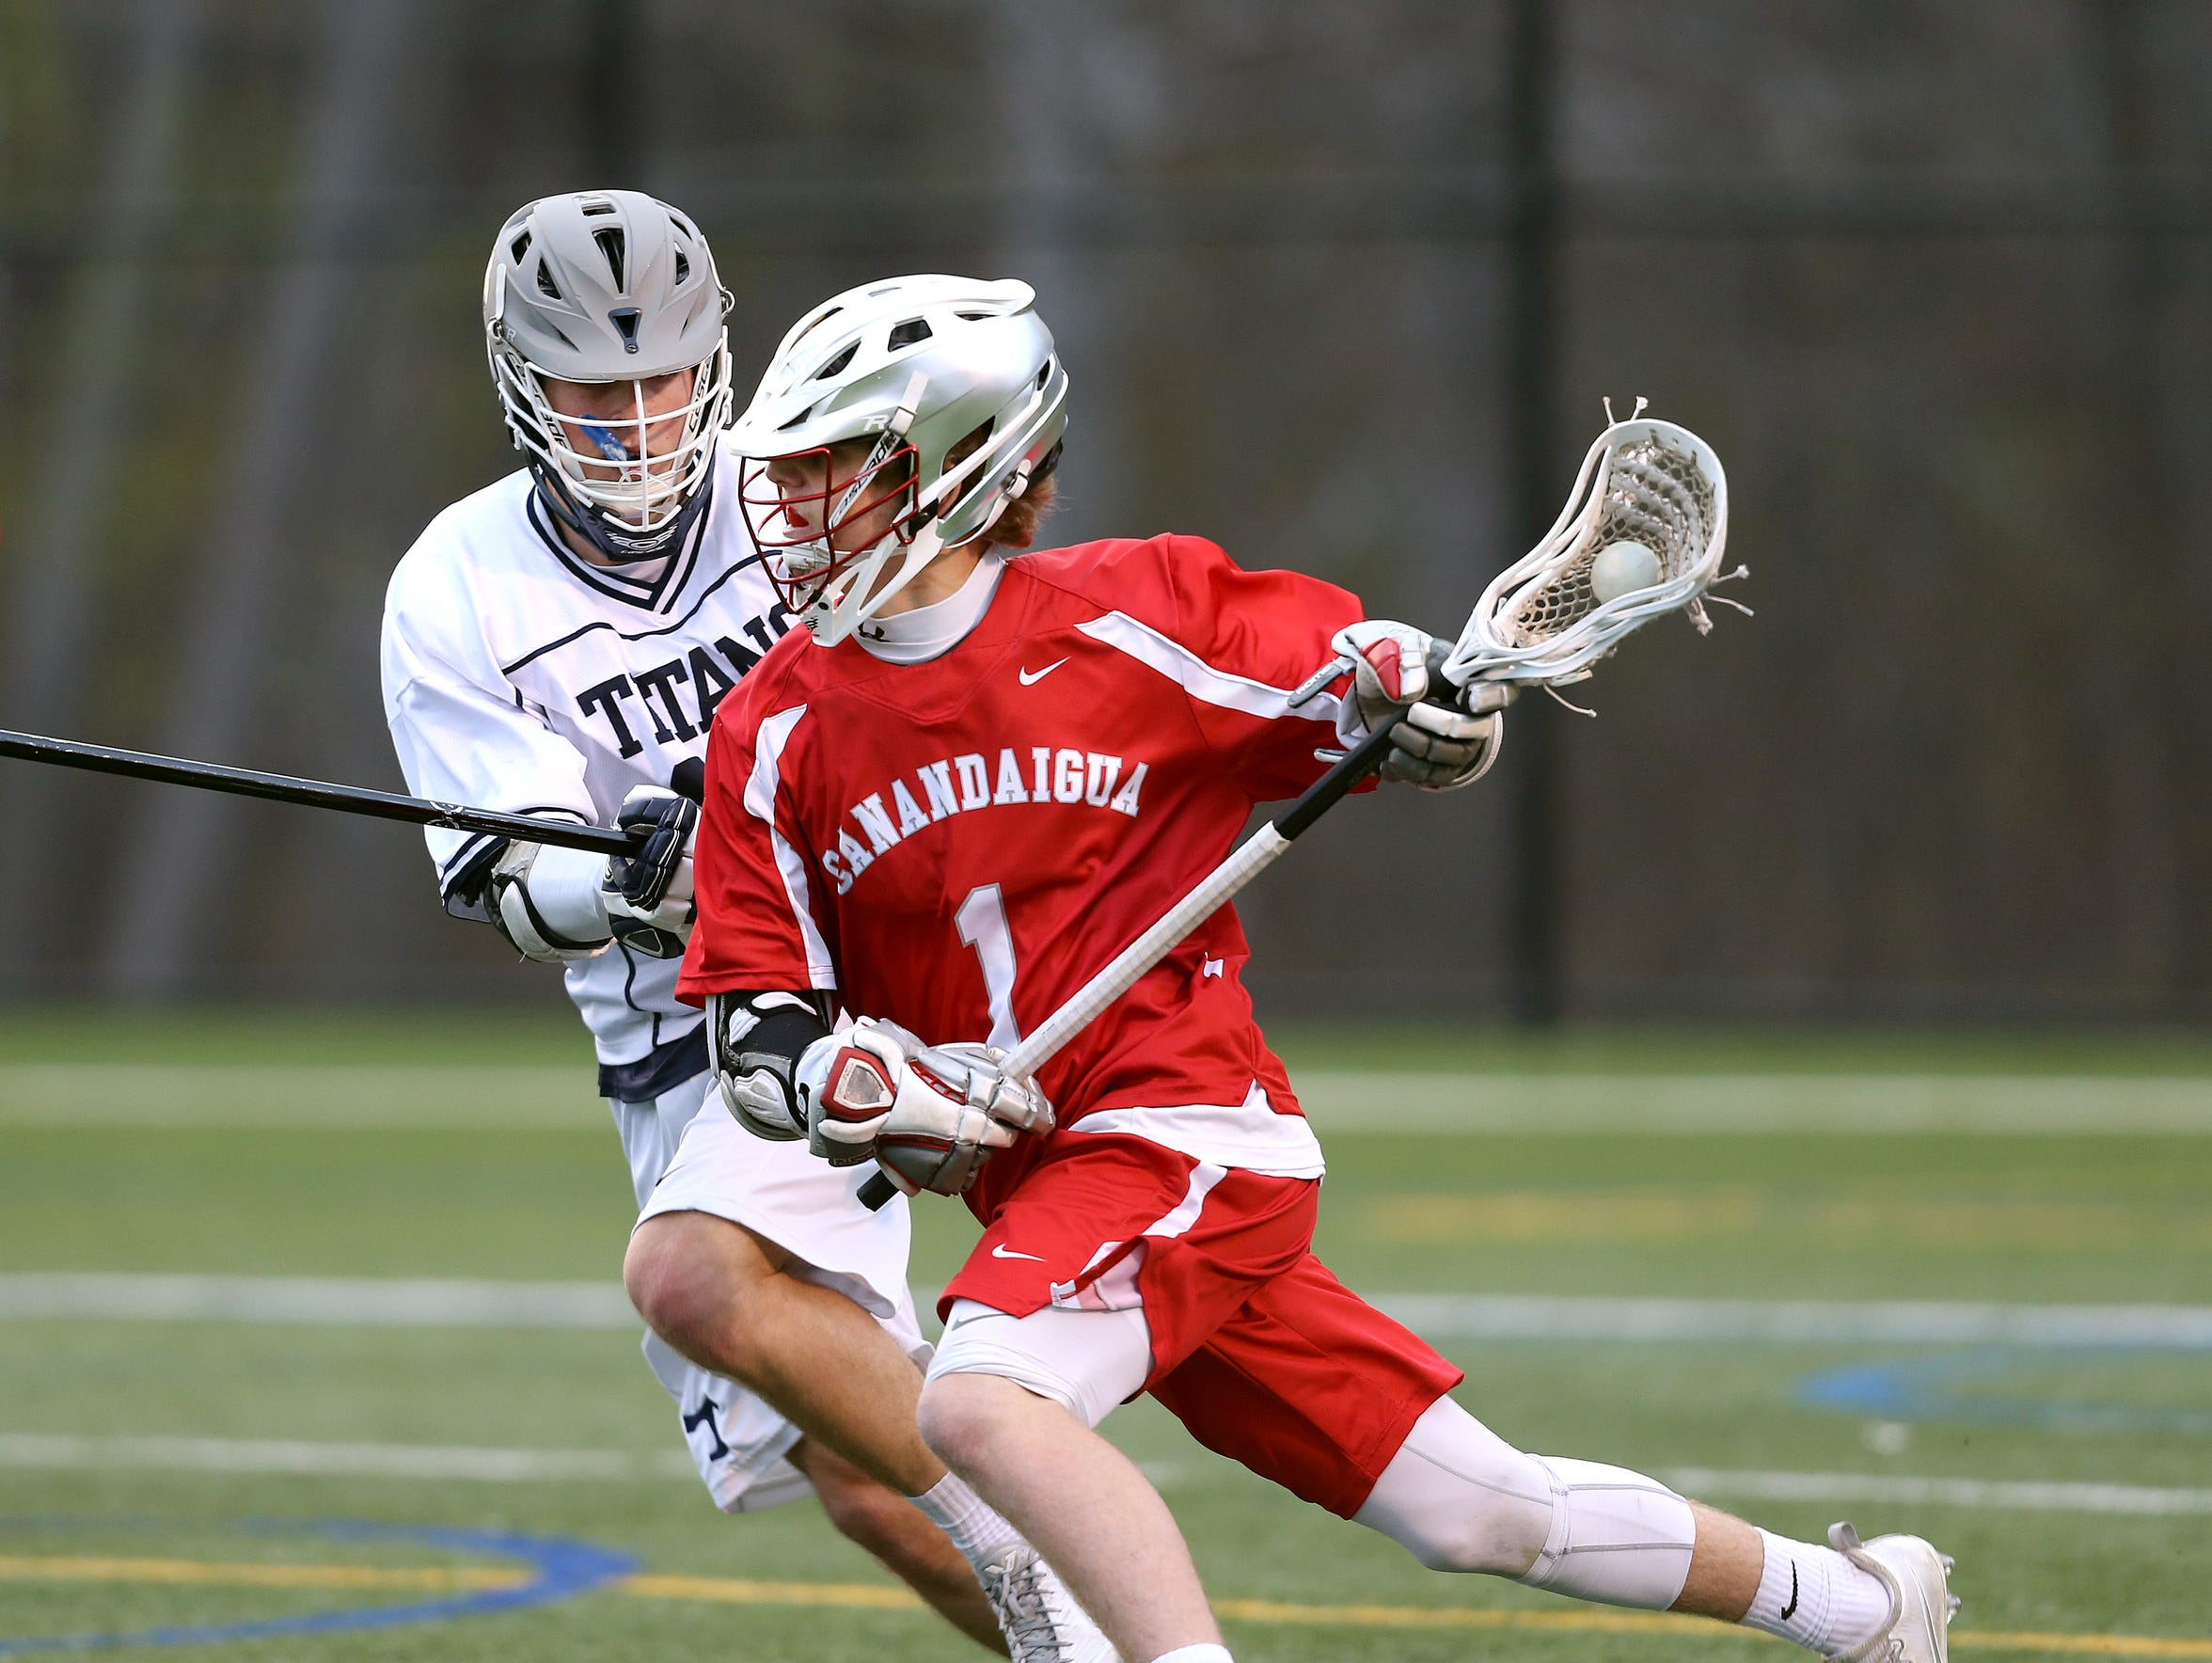 Canandaigua's Devin Andrews was the AGR boys lacrosse